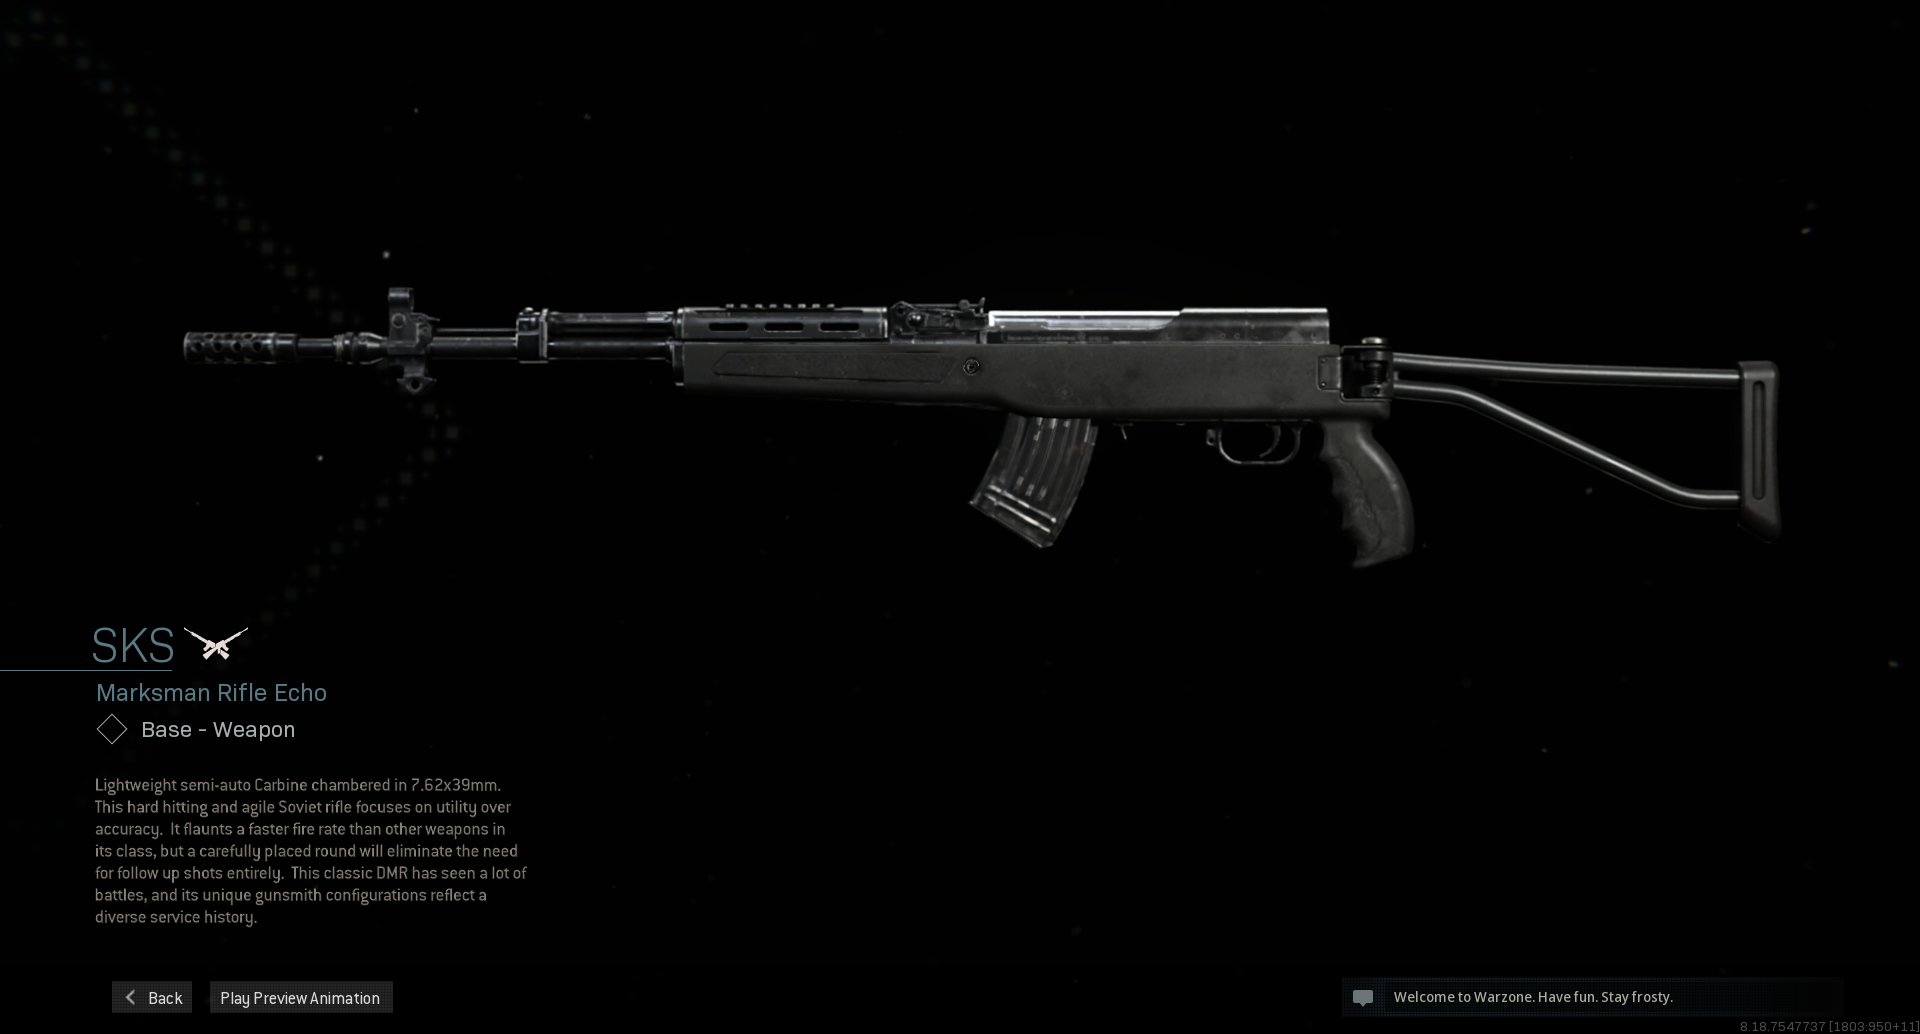 How to unlock the Renetti and SKS in Call of Duty: Modern Warfare